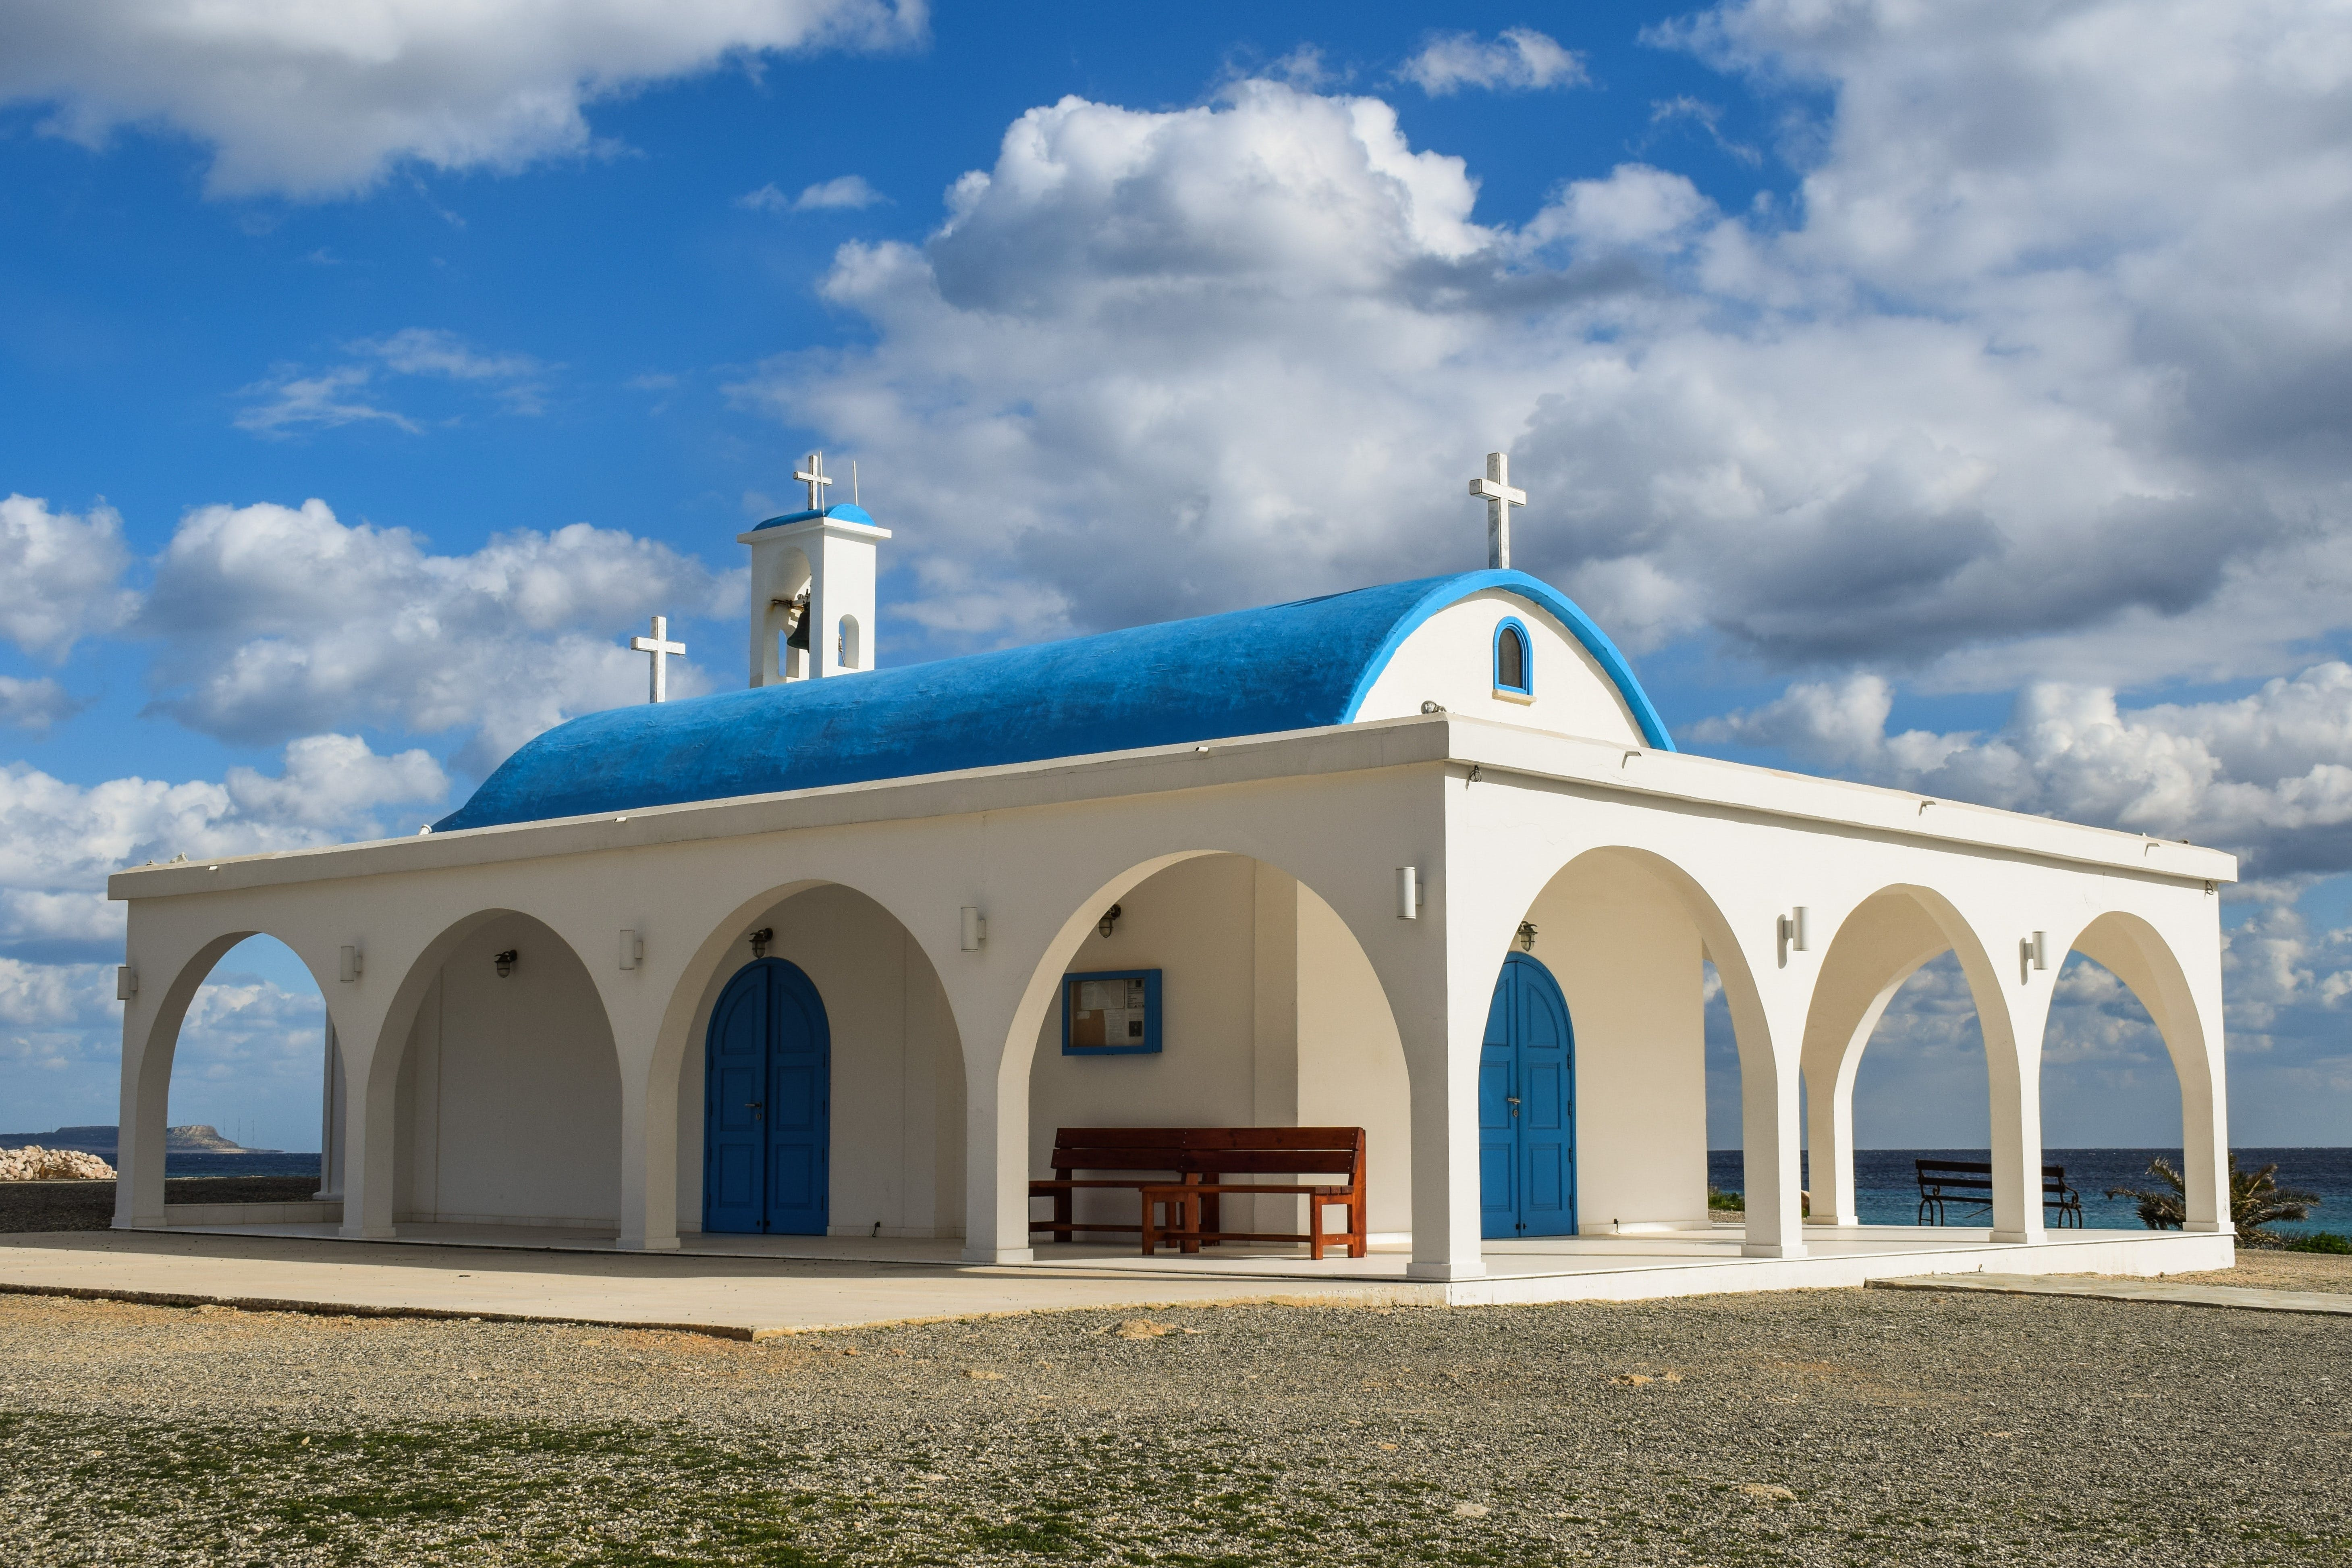 White and Blue Painted Church Under Blue Sky